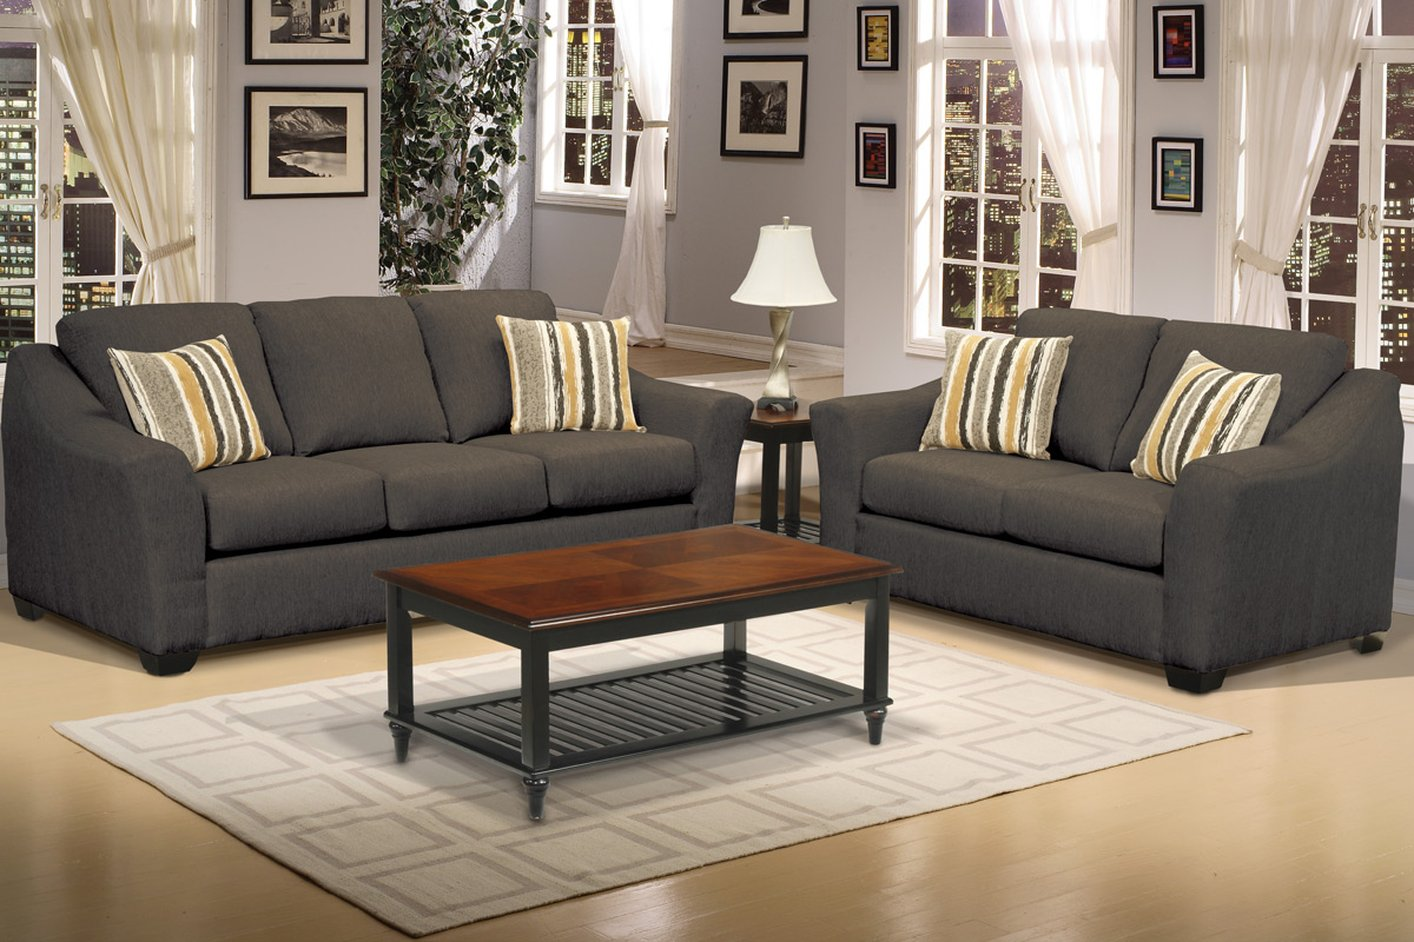 sofa & loveseat set - steal-a-sofa furniture outlet los angeles ca